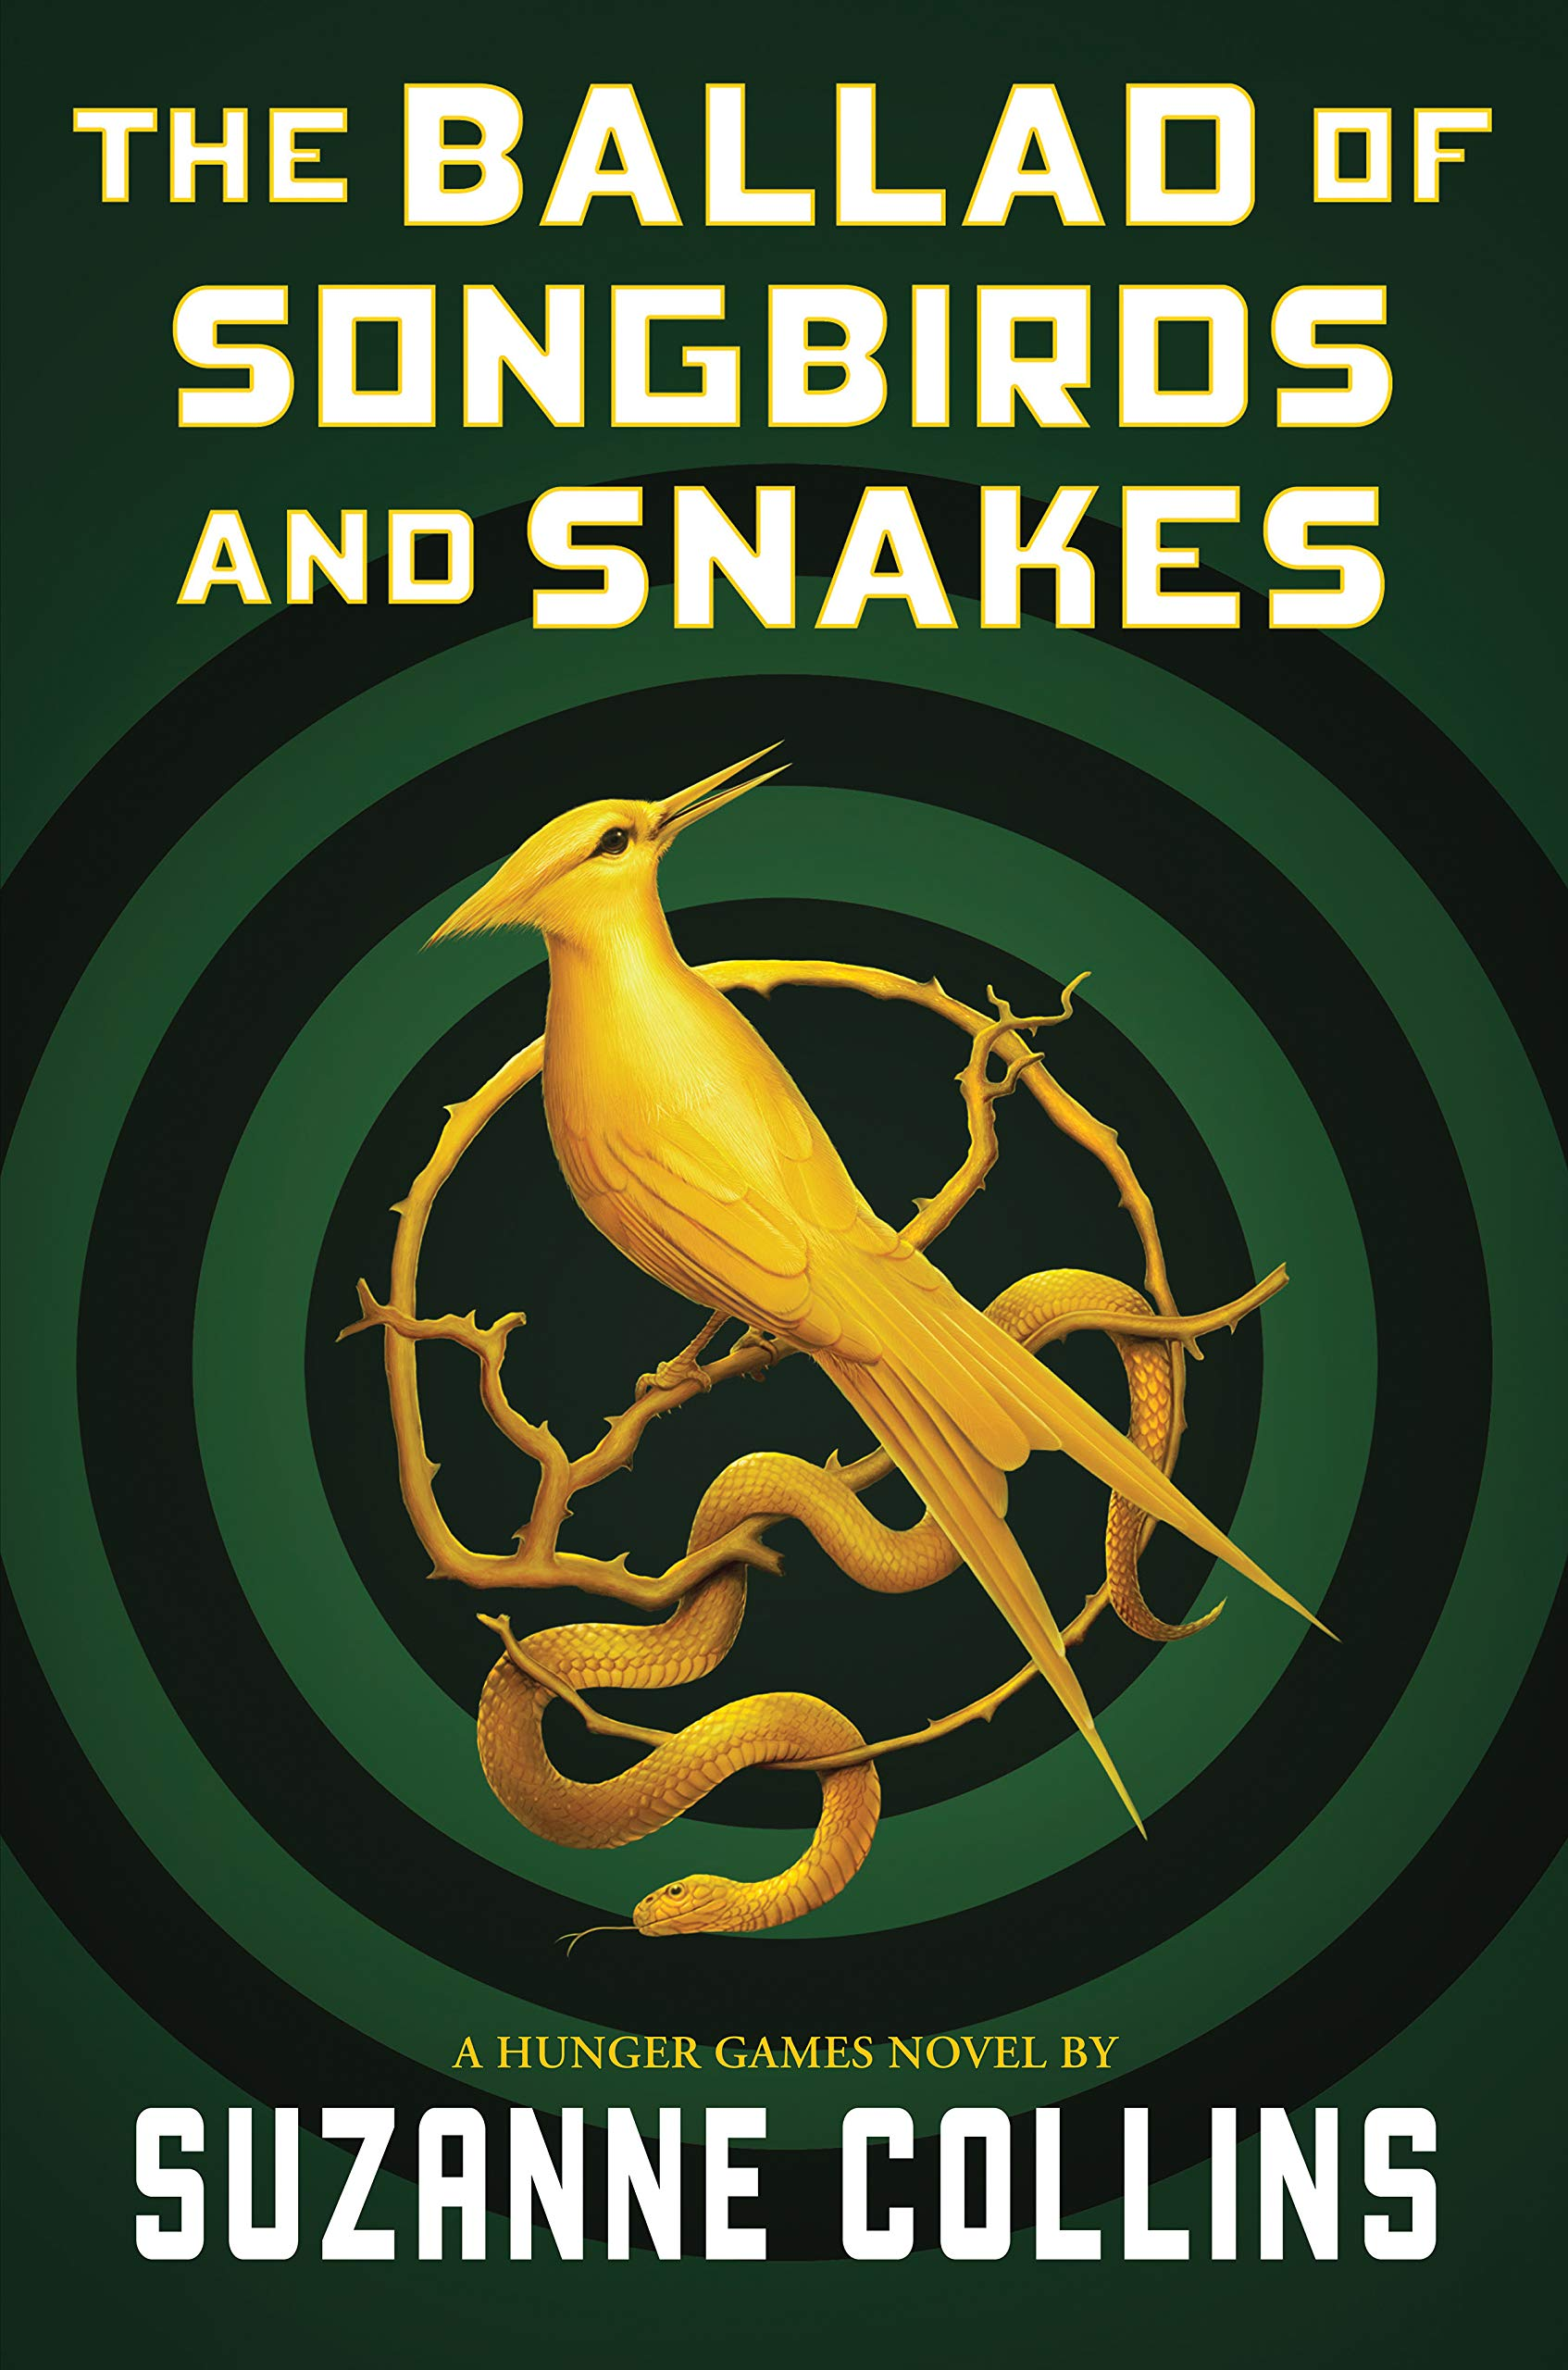 Amazon.com: The Ballad of Songbirds and Snakes (A Hunger Games Novel)  eBook: Collins, Suzanne: Kindle Store